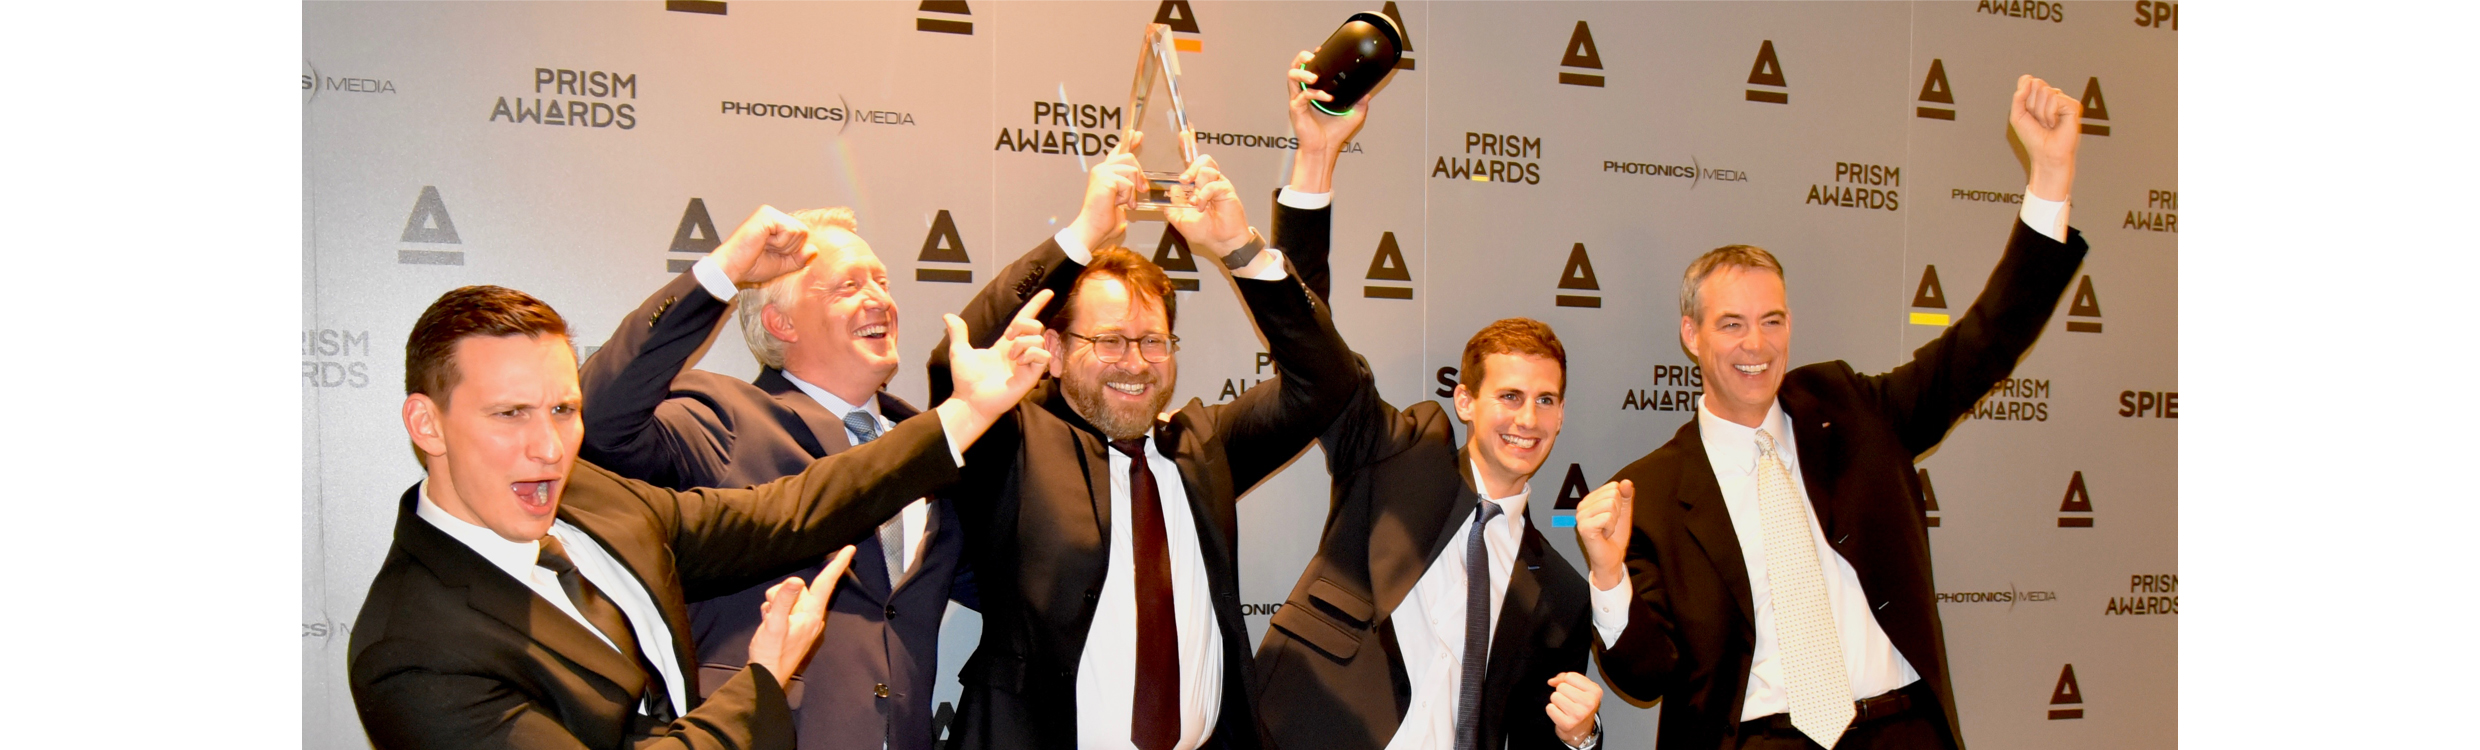 From left to right: Leica Geosystems' Kevin Rinaldi-Young, content product specialist; Hugh Baertlein,VP of eBusiness; Burkhard Boeckem, CTO; Lukas Heinzle, product engineer; and Ken Mooyman, NAFTA president, celebrate the BLK360's win at the PRISM Awards for Photonics Innovation in San Francisco, USA, 1 February 2017.